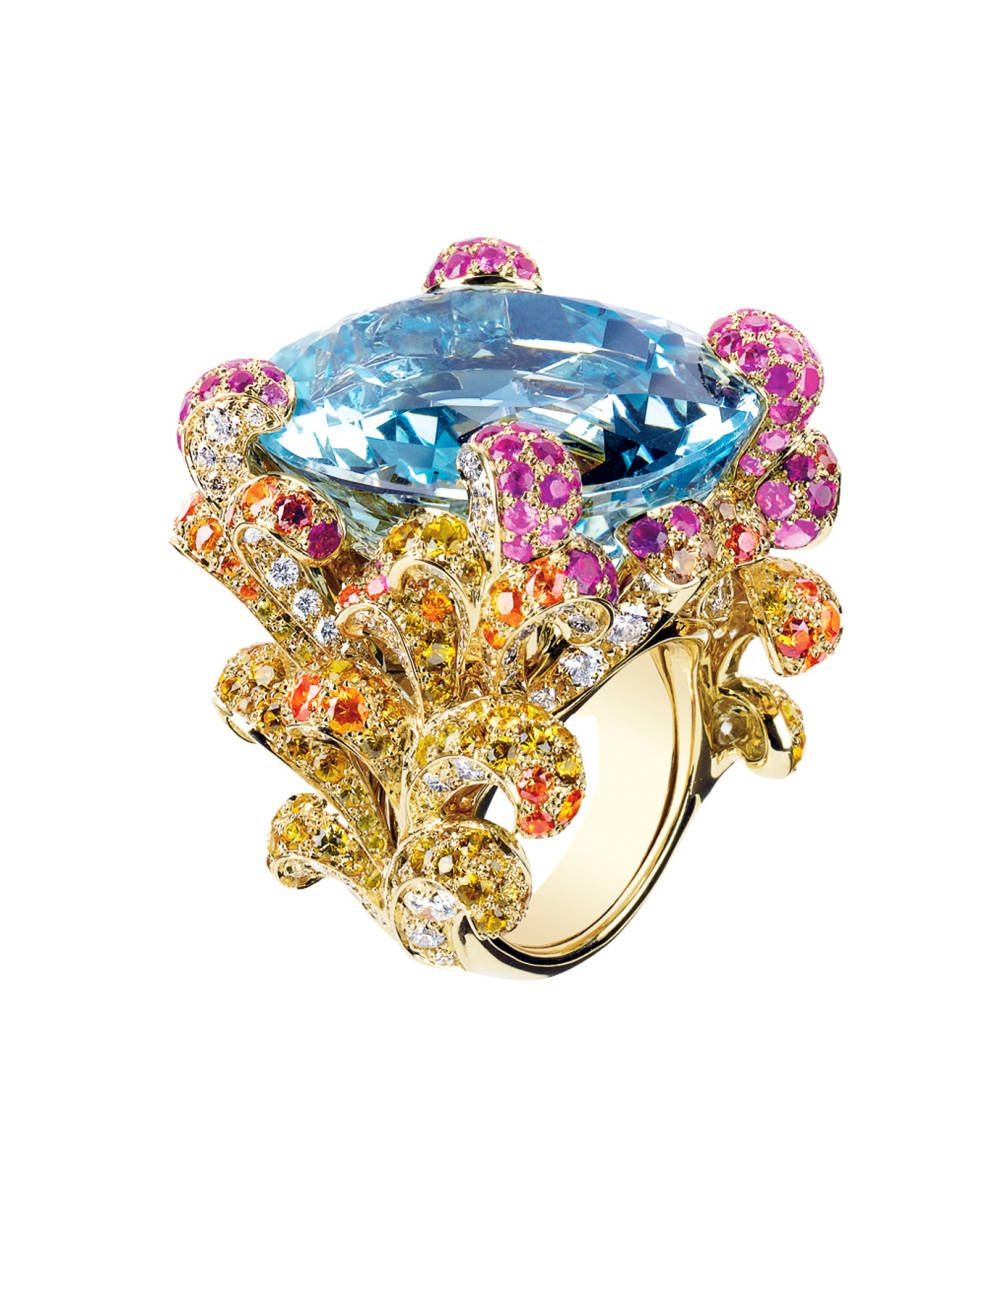 A true jaw-dropping masterpiece. Dior Fine Jewelry ring.